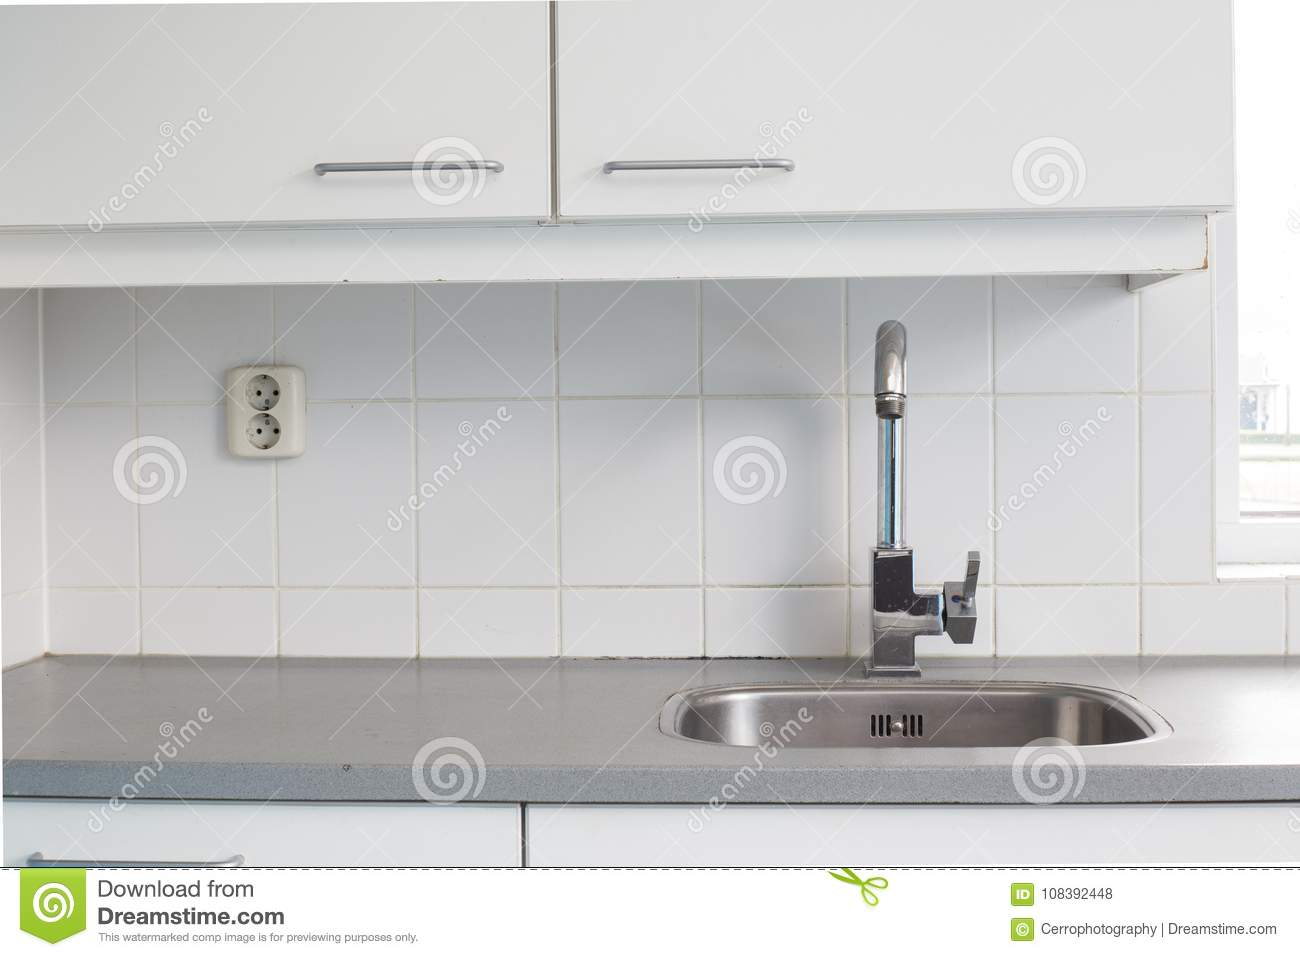 Empty Kitchen Sink Old School Design Stock Photo - Image of counter ...